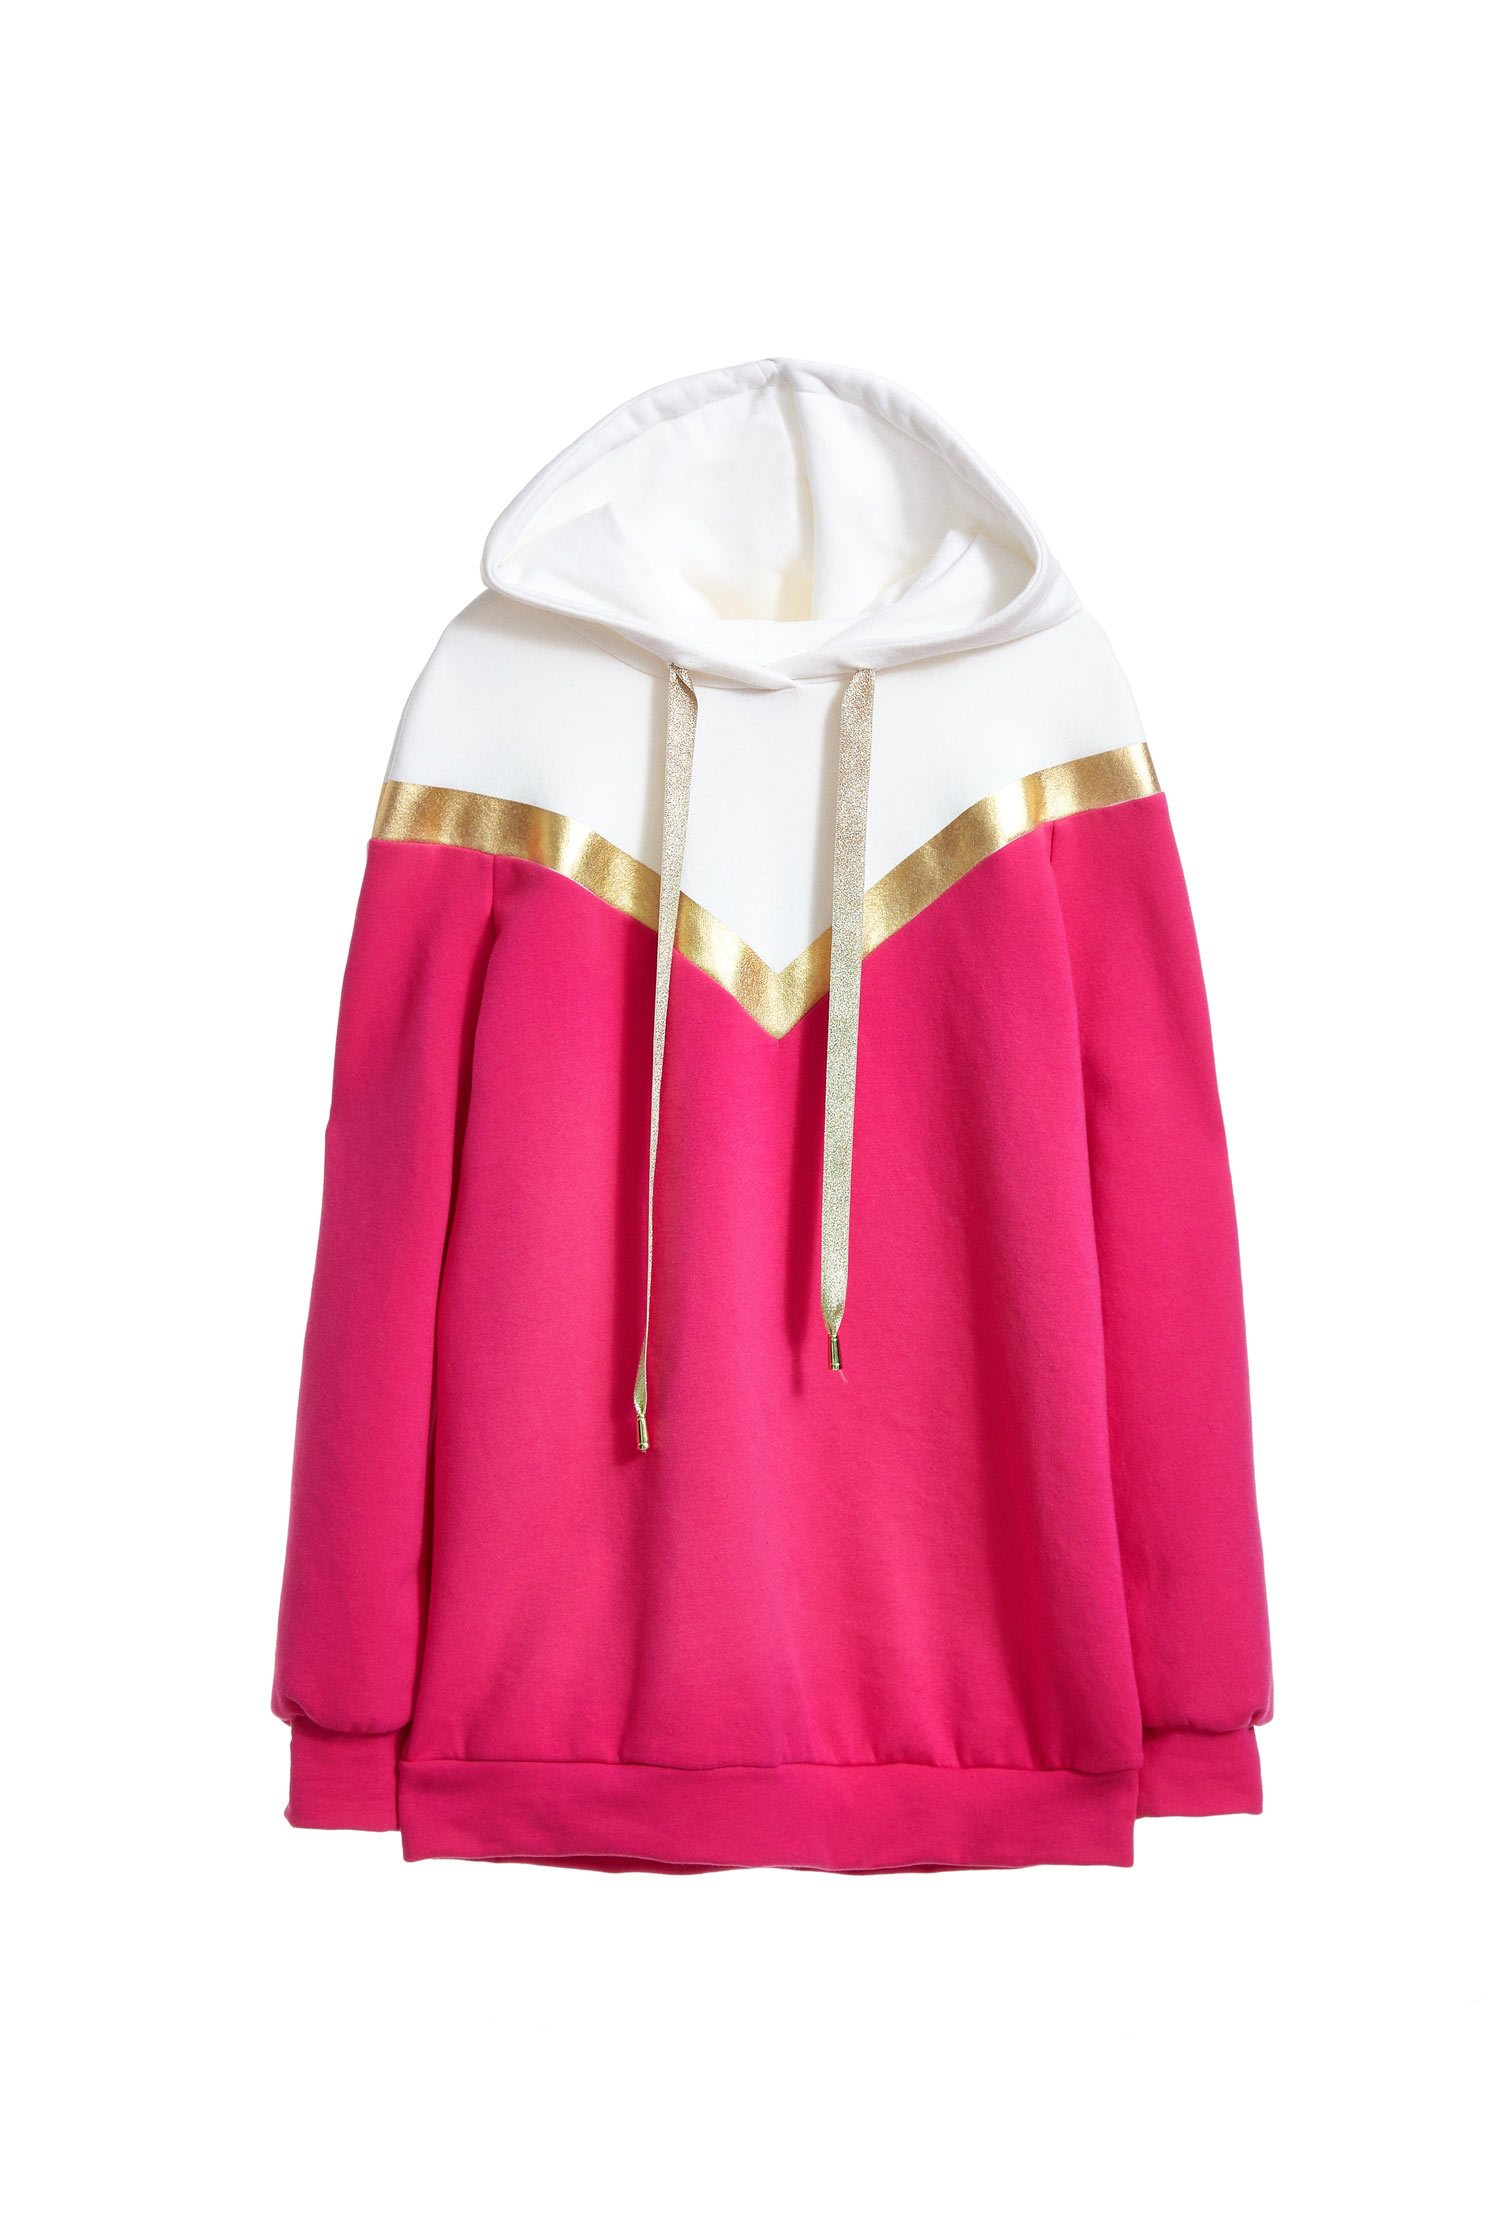 Hoodie with a colour combination